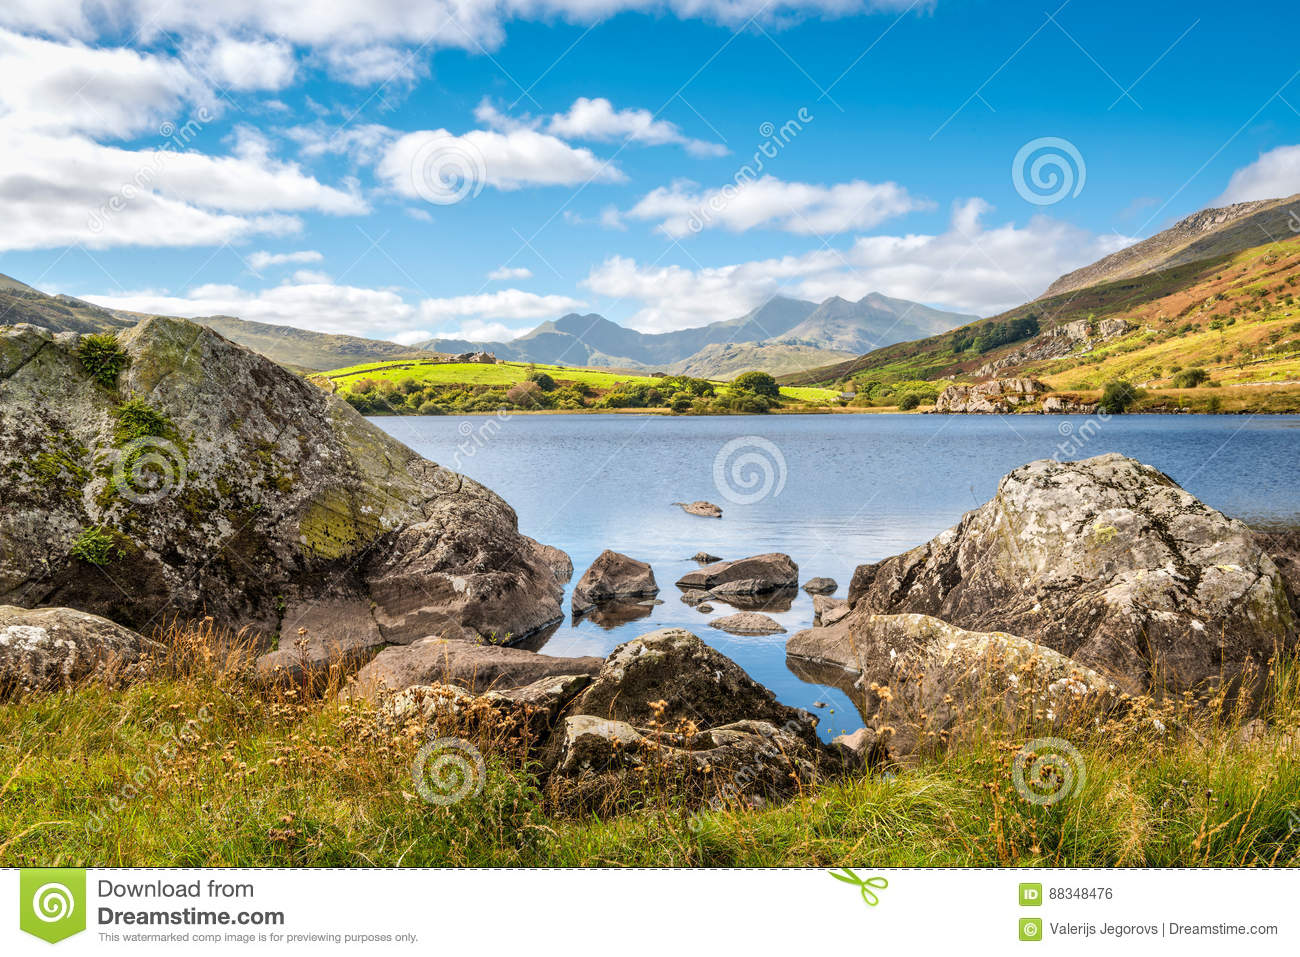 Lake Llynnau Mymbyr in Snowdonia, North Wales